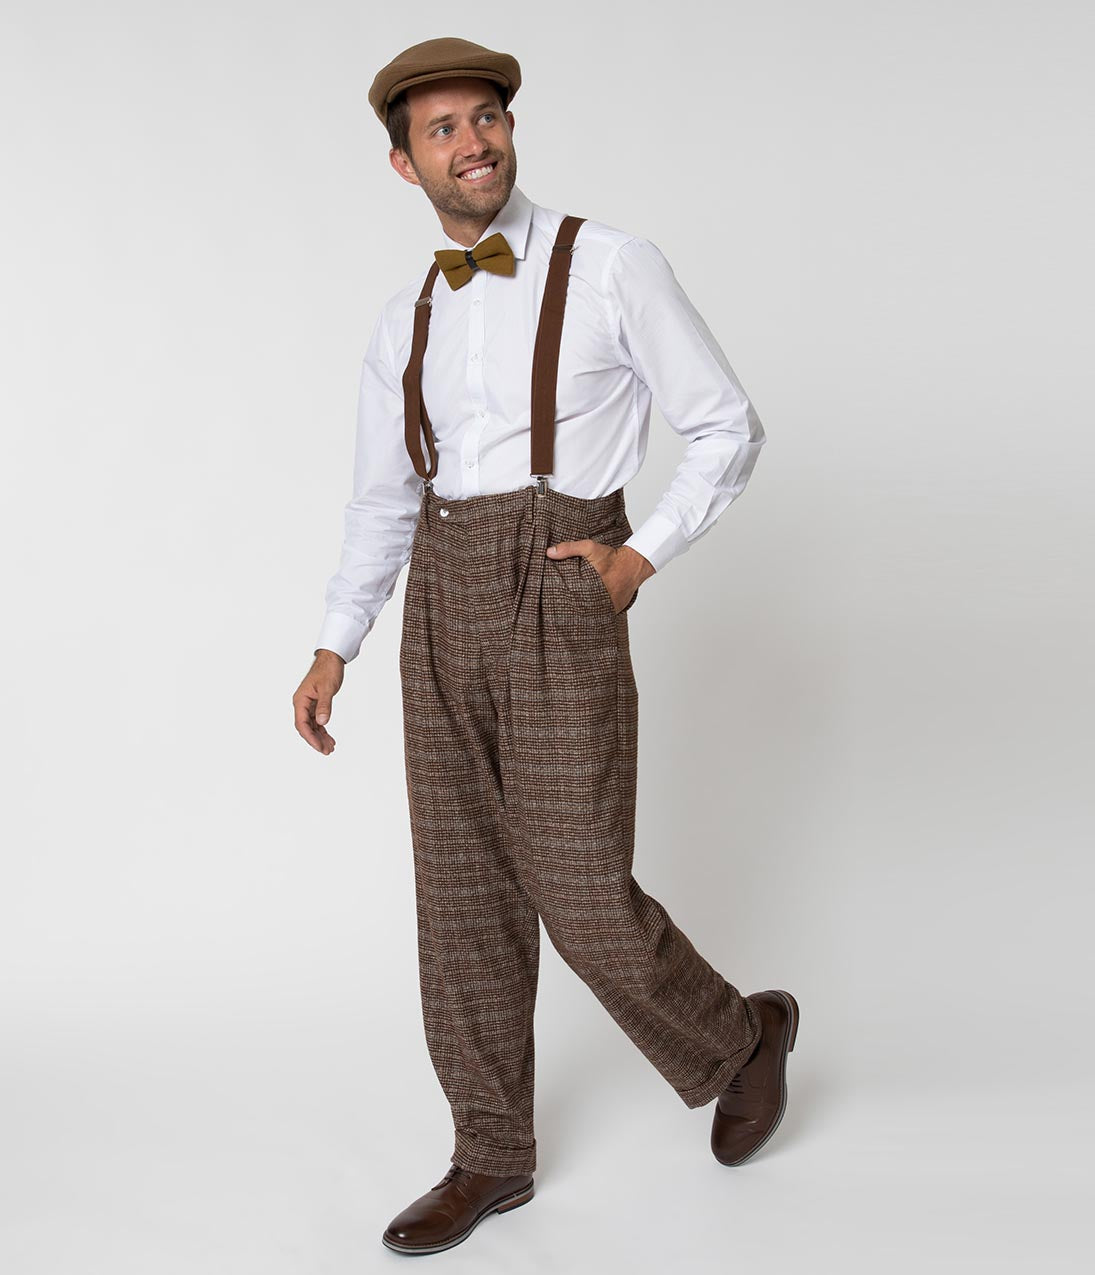 Style Vintage outfits for men